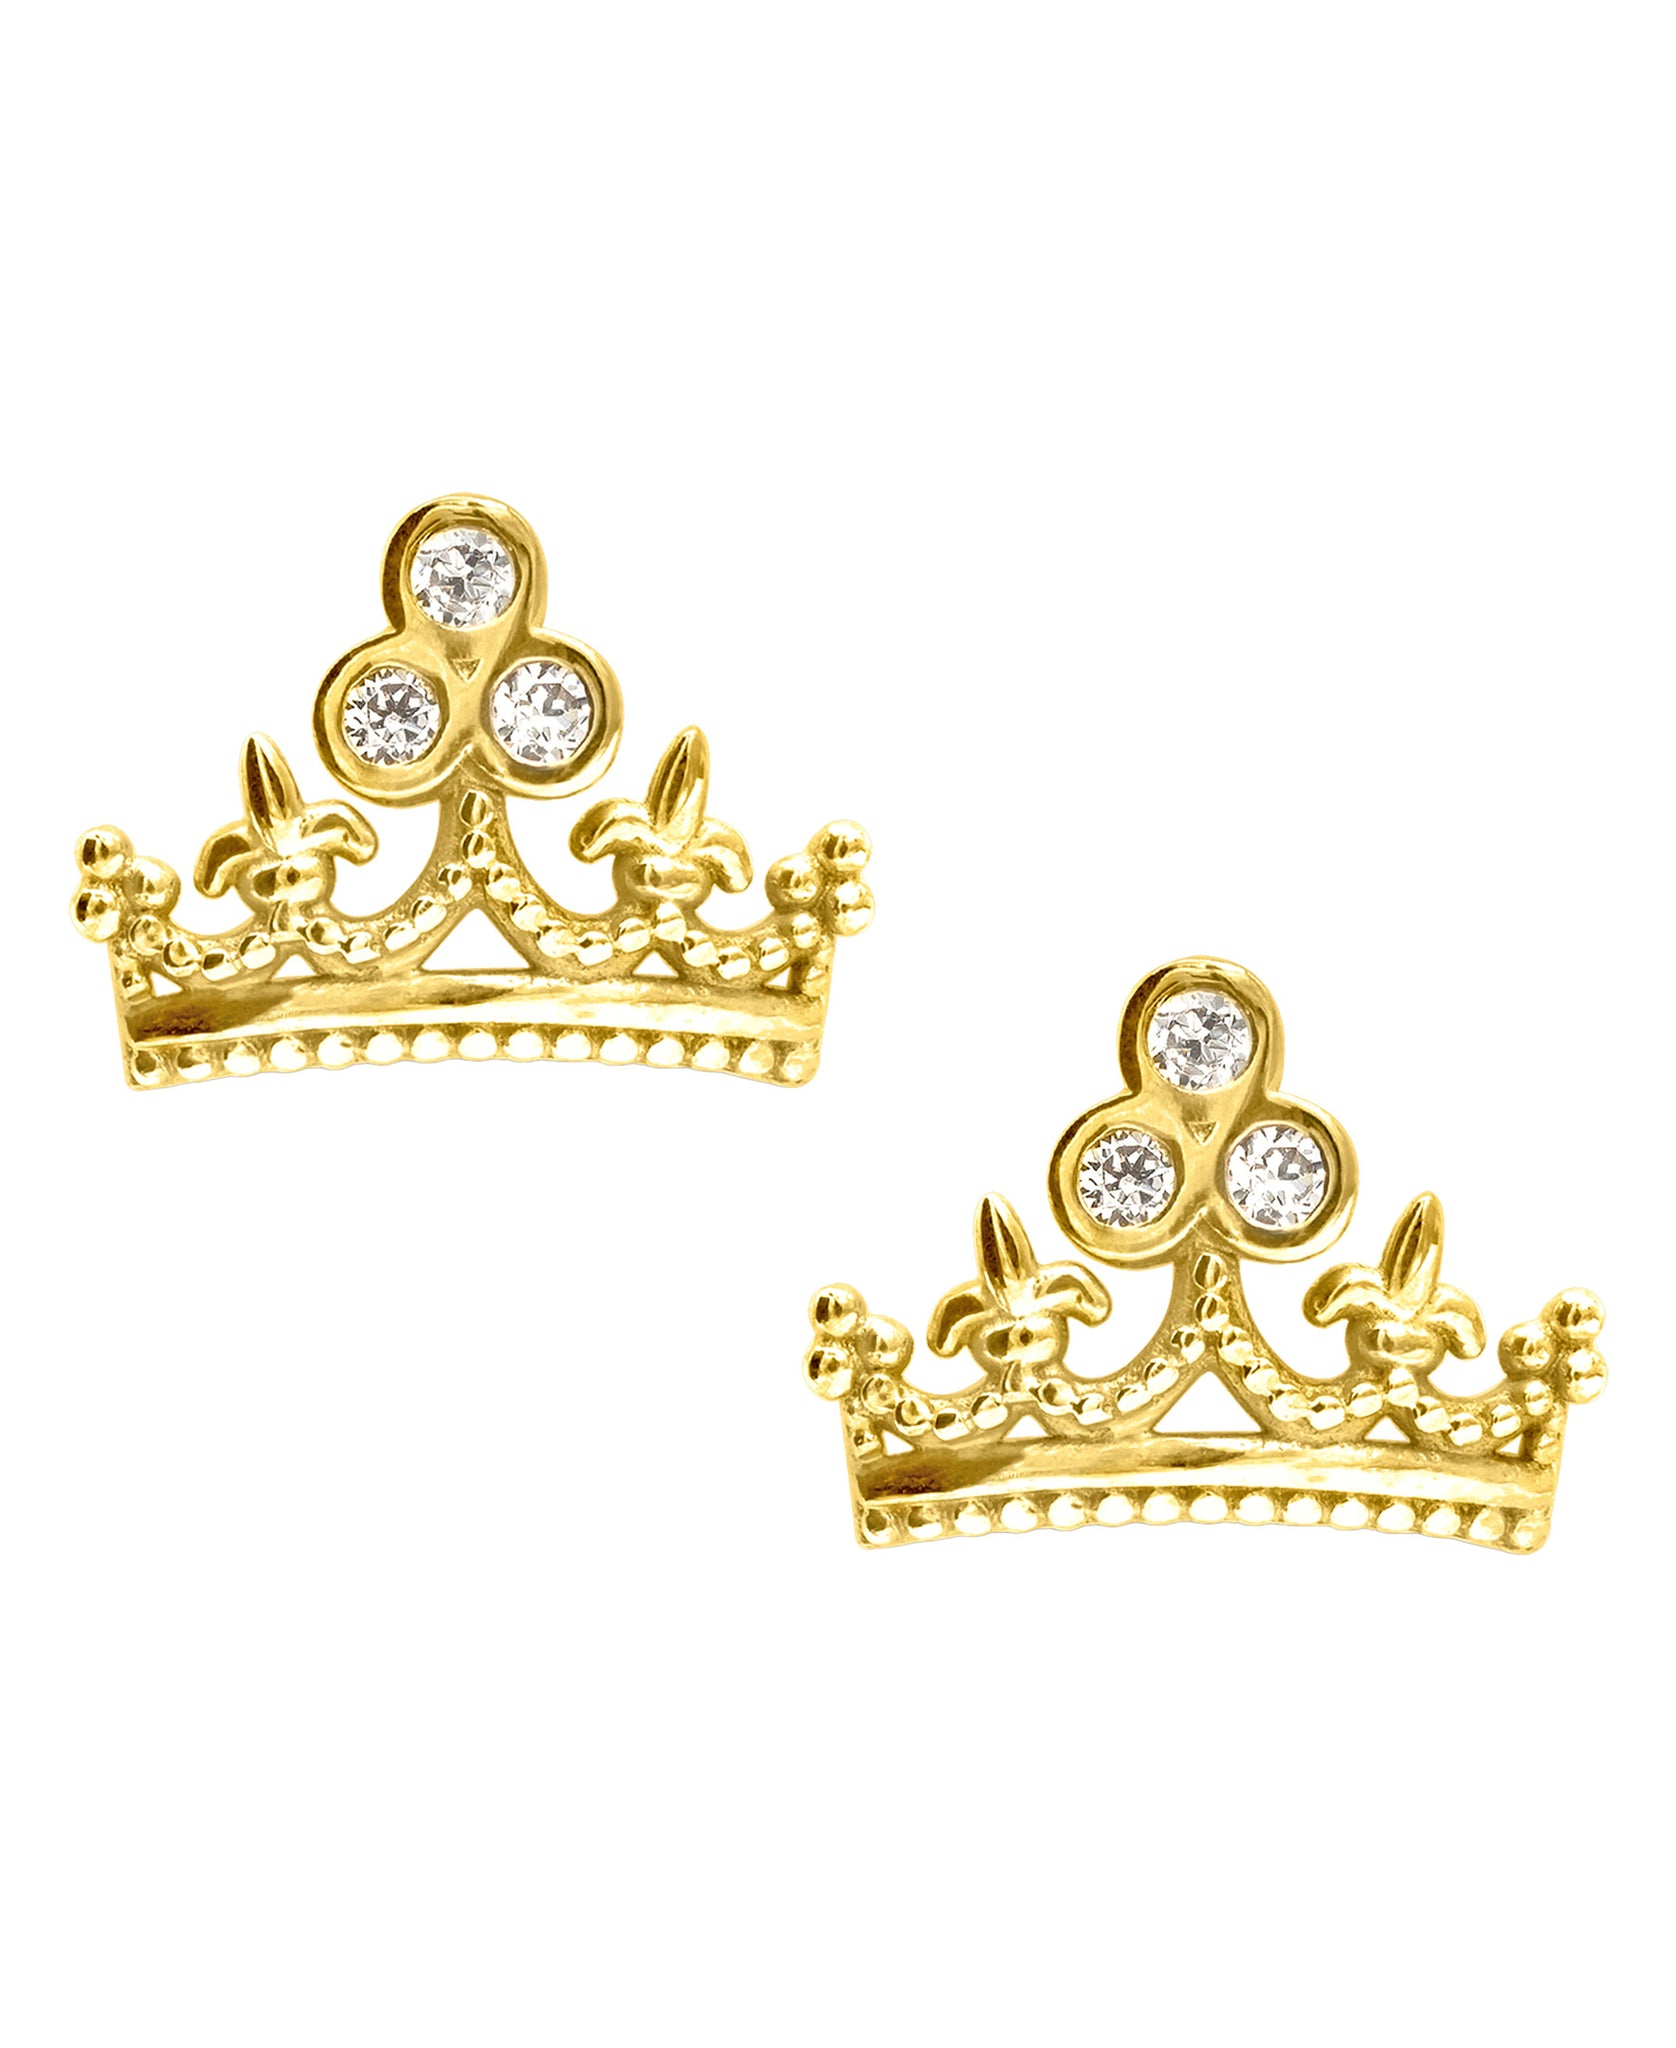 Children's 10K Gold & Cubic Zirconia Crown Stud Earrings - Rhona Sutton Jewellery